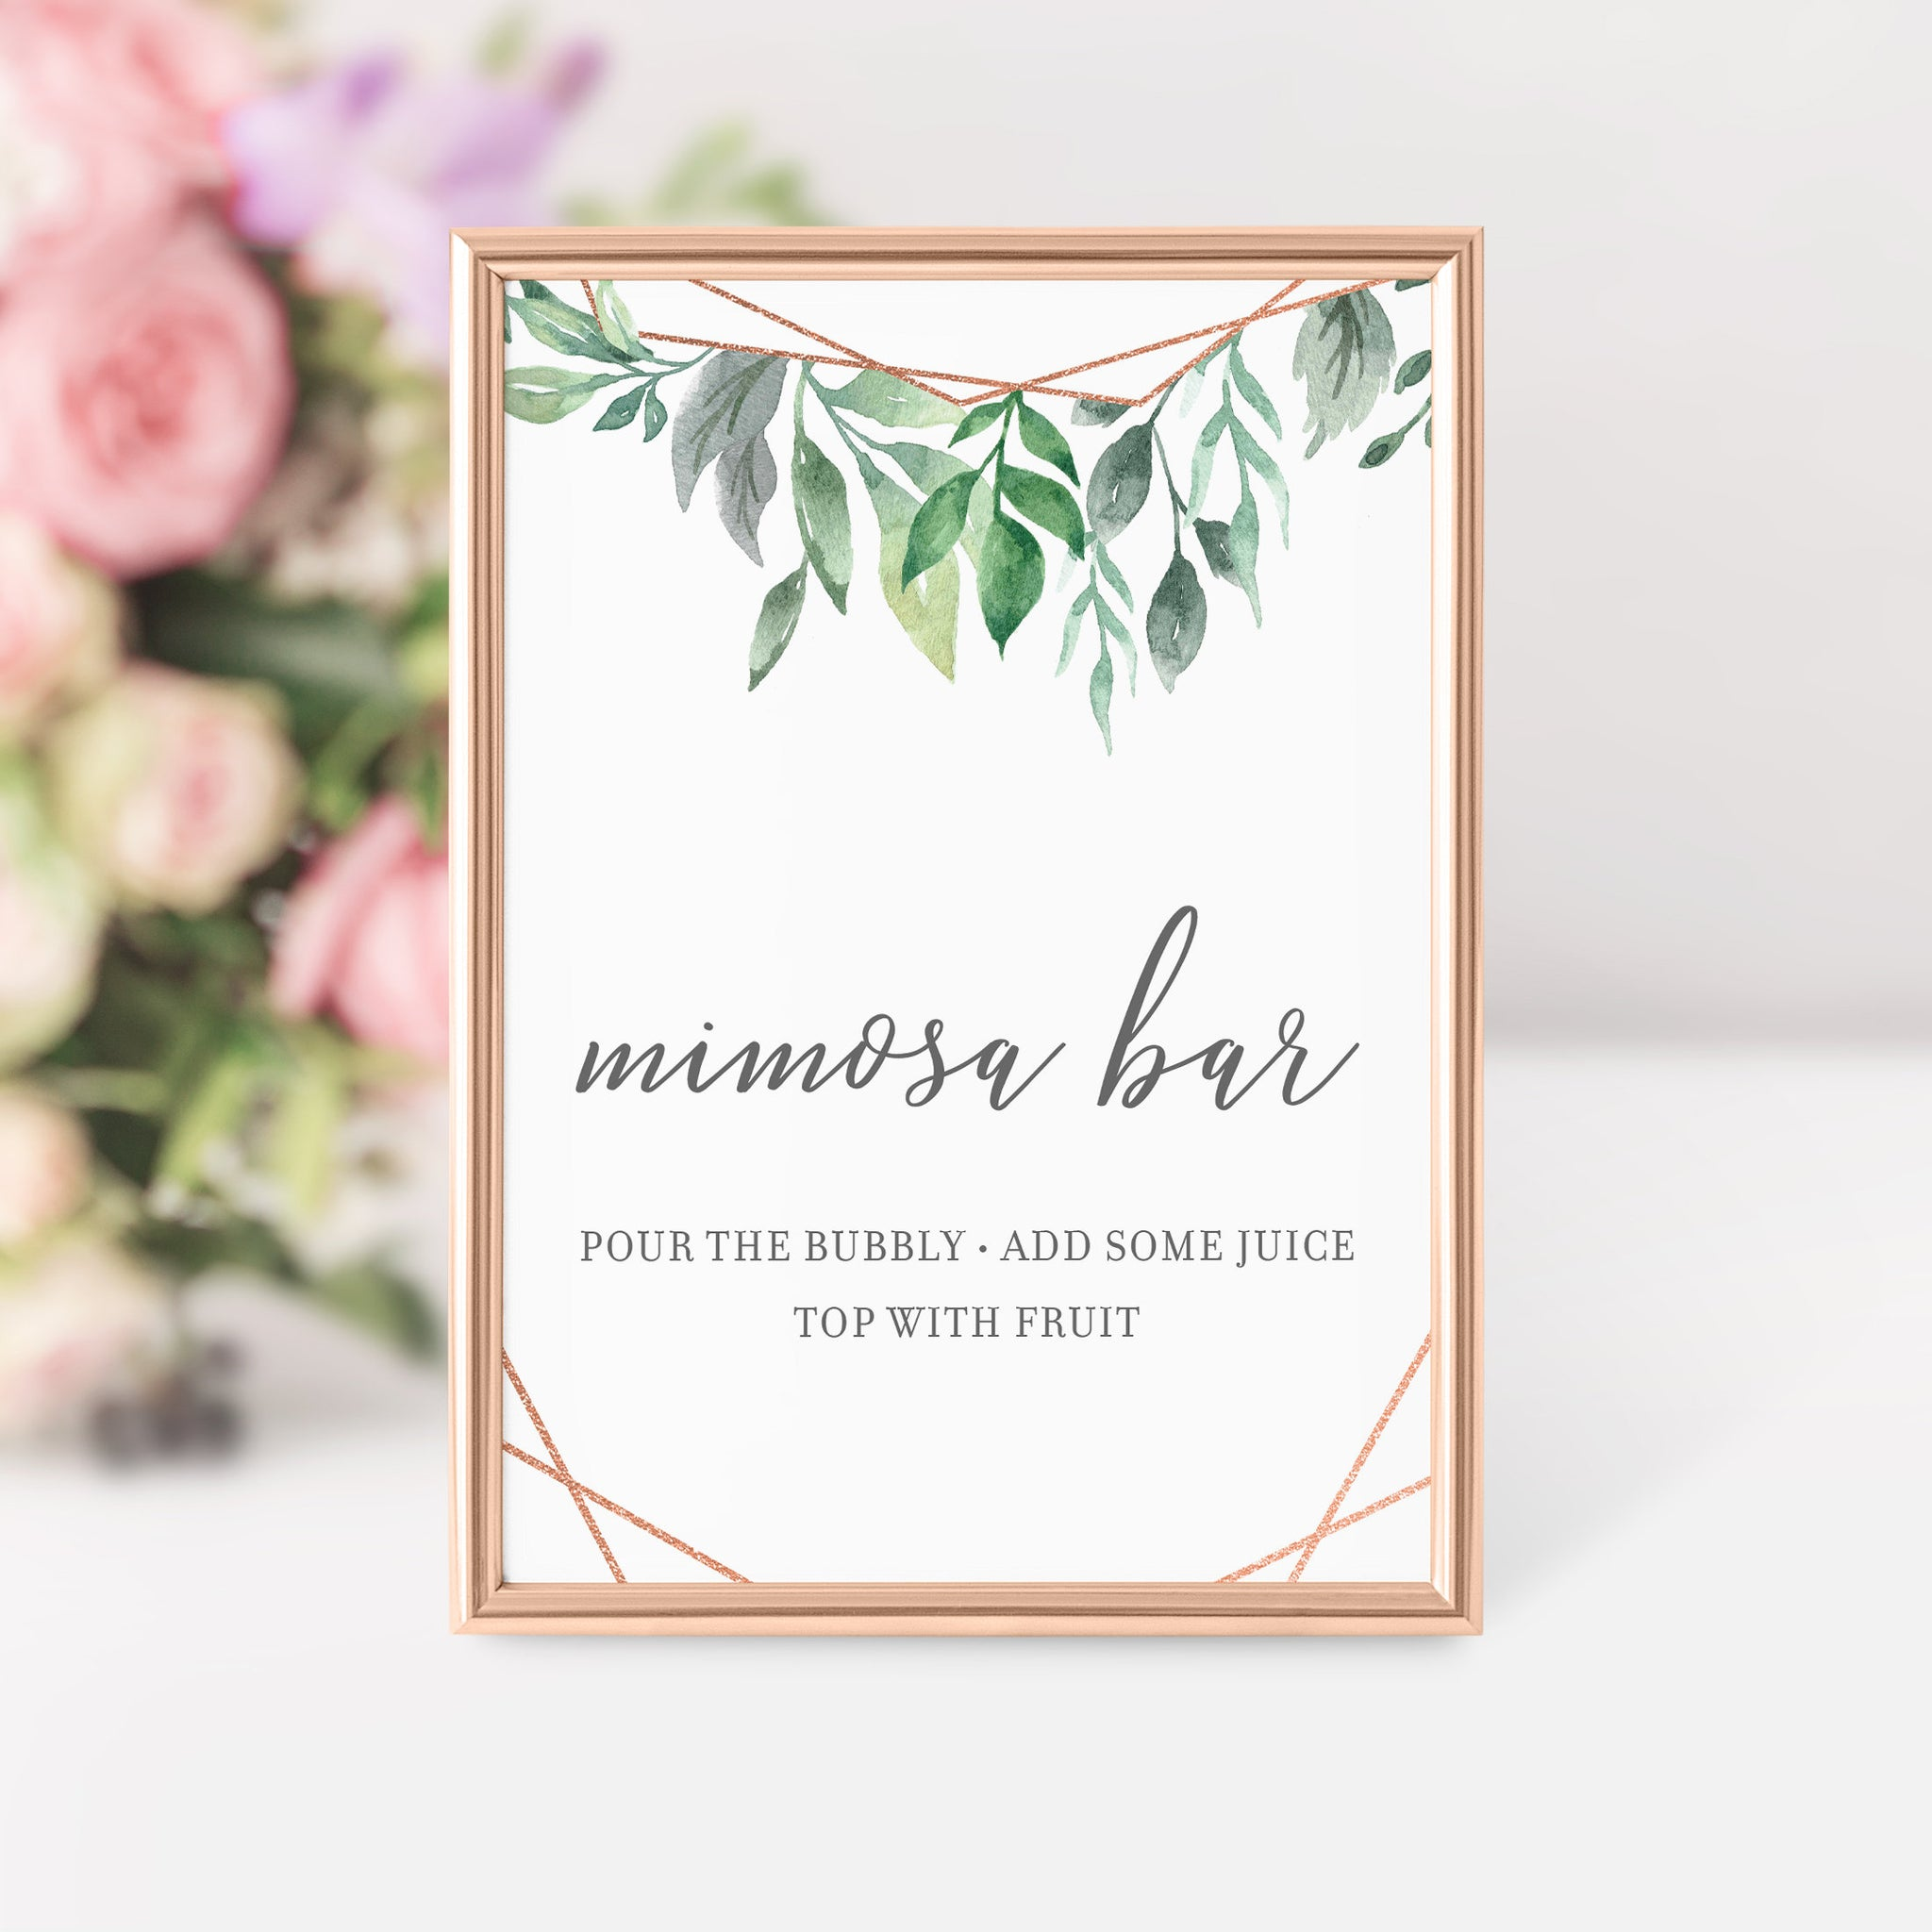 Geometric Rose Gold Greenery Mimosa Bar Printable Sign INSTANT DOWNLOAD, Birthday, Bridal Shower, Baby Shower, Wedding Decorations - GFRG100